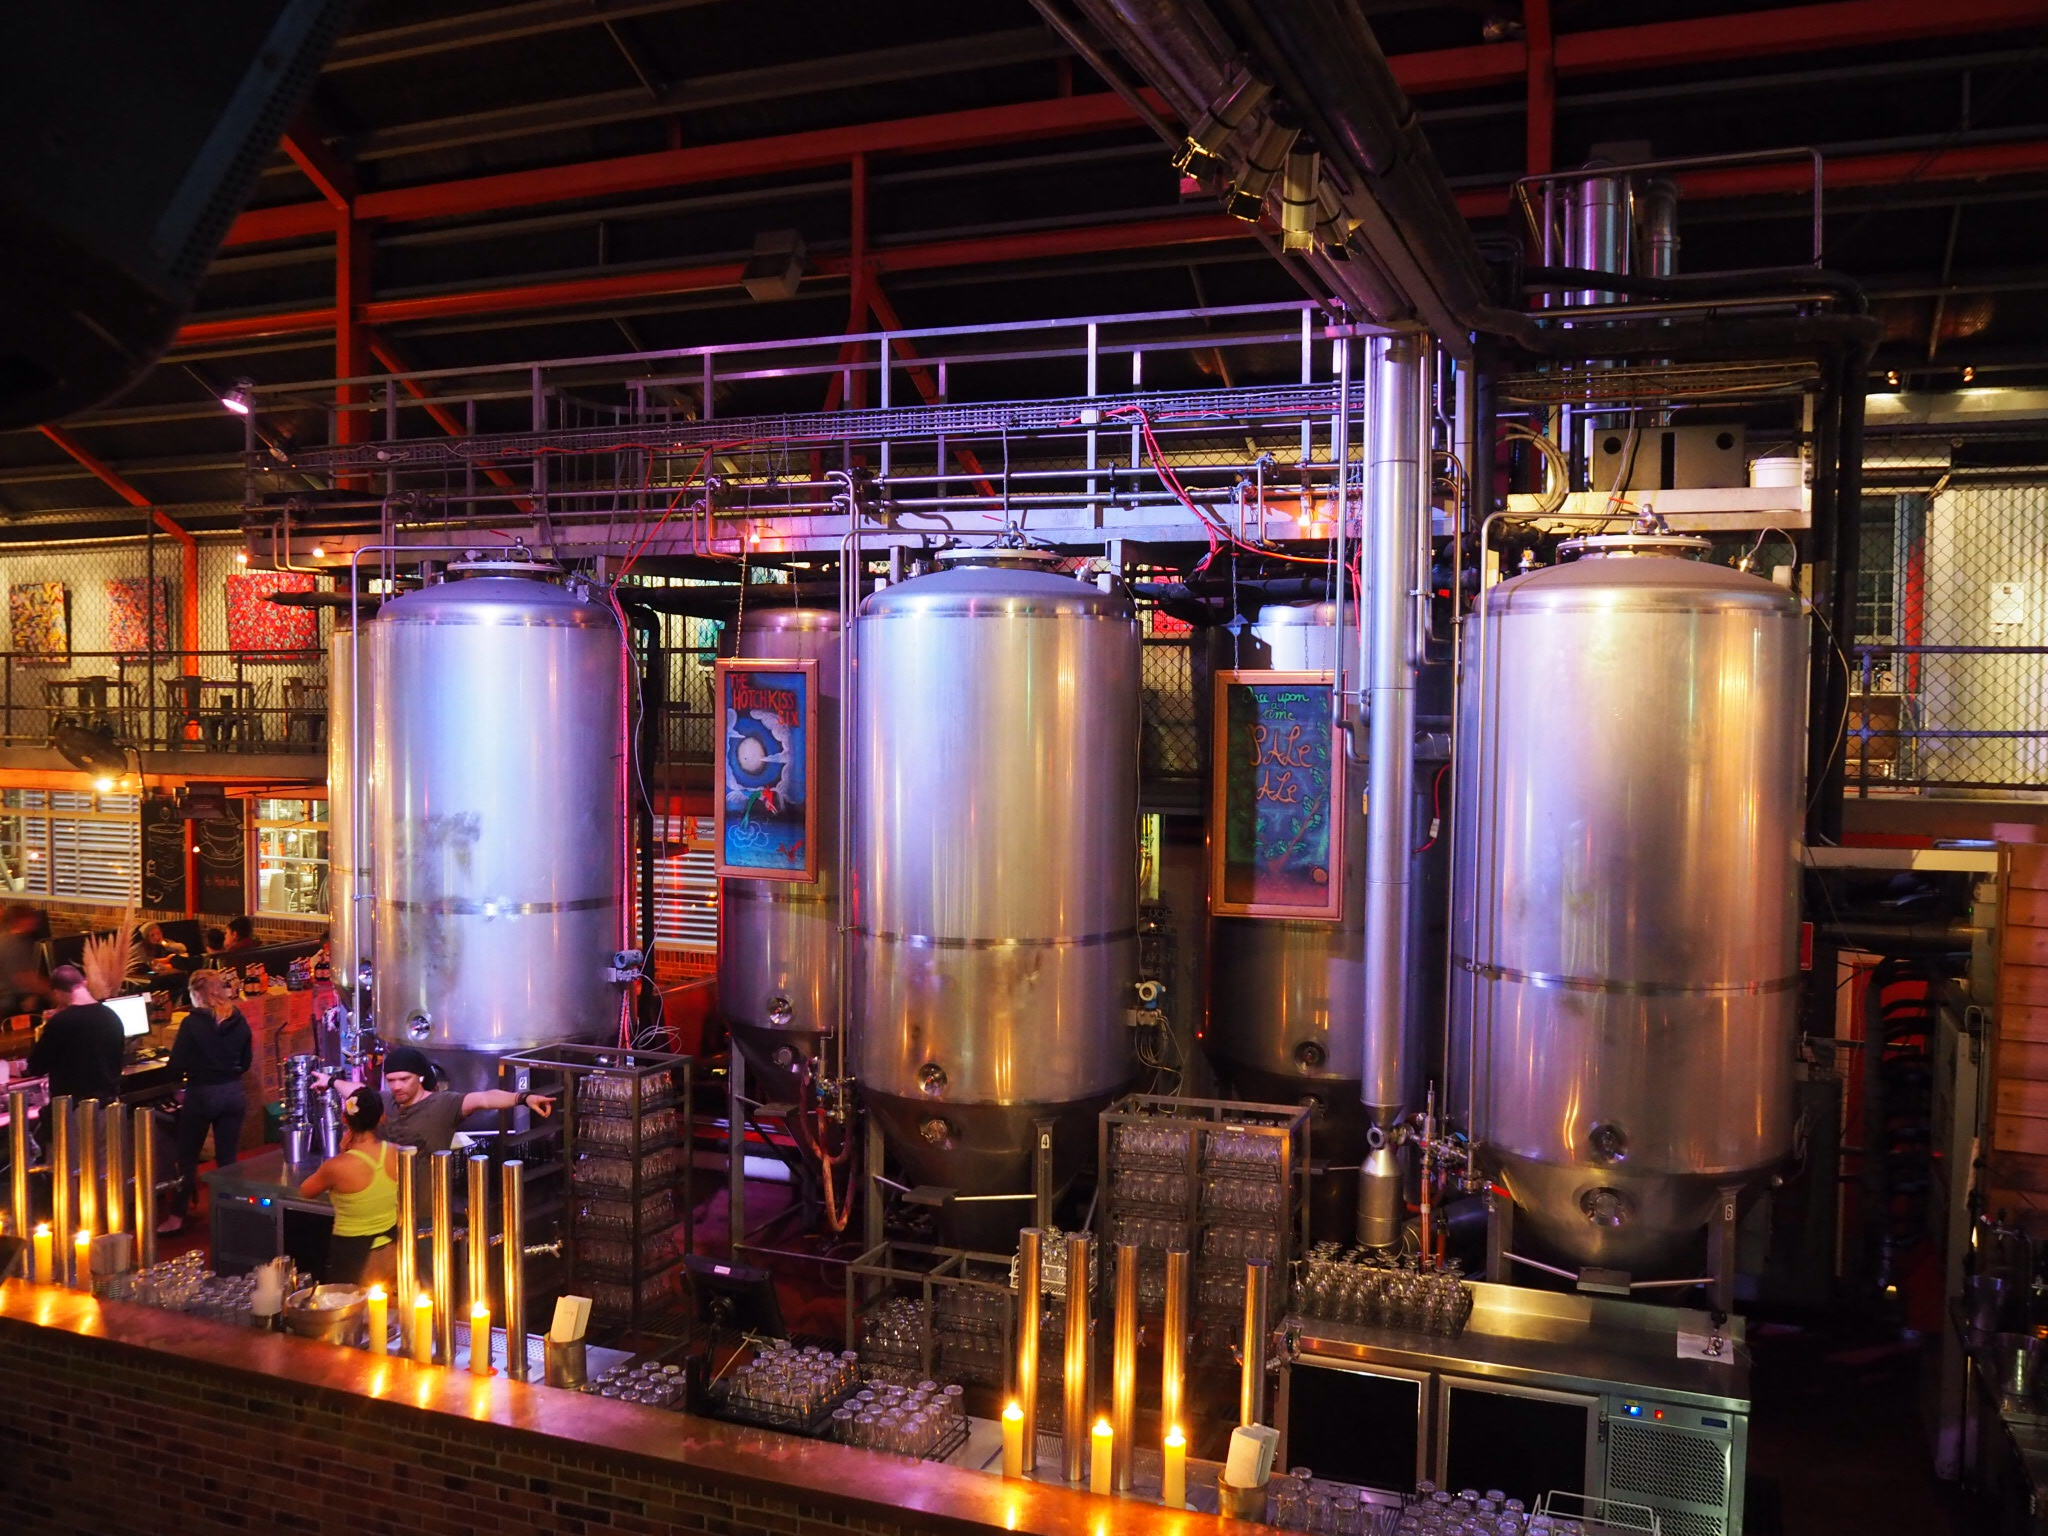 Getting up close and personal with the brewery process